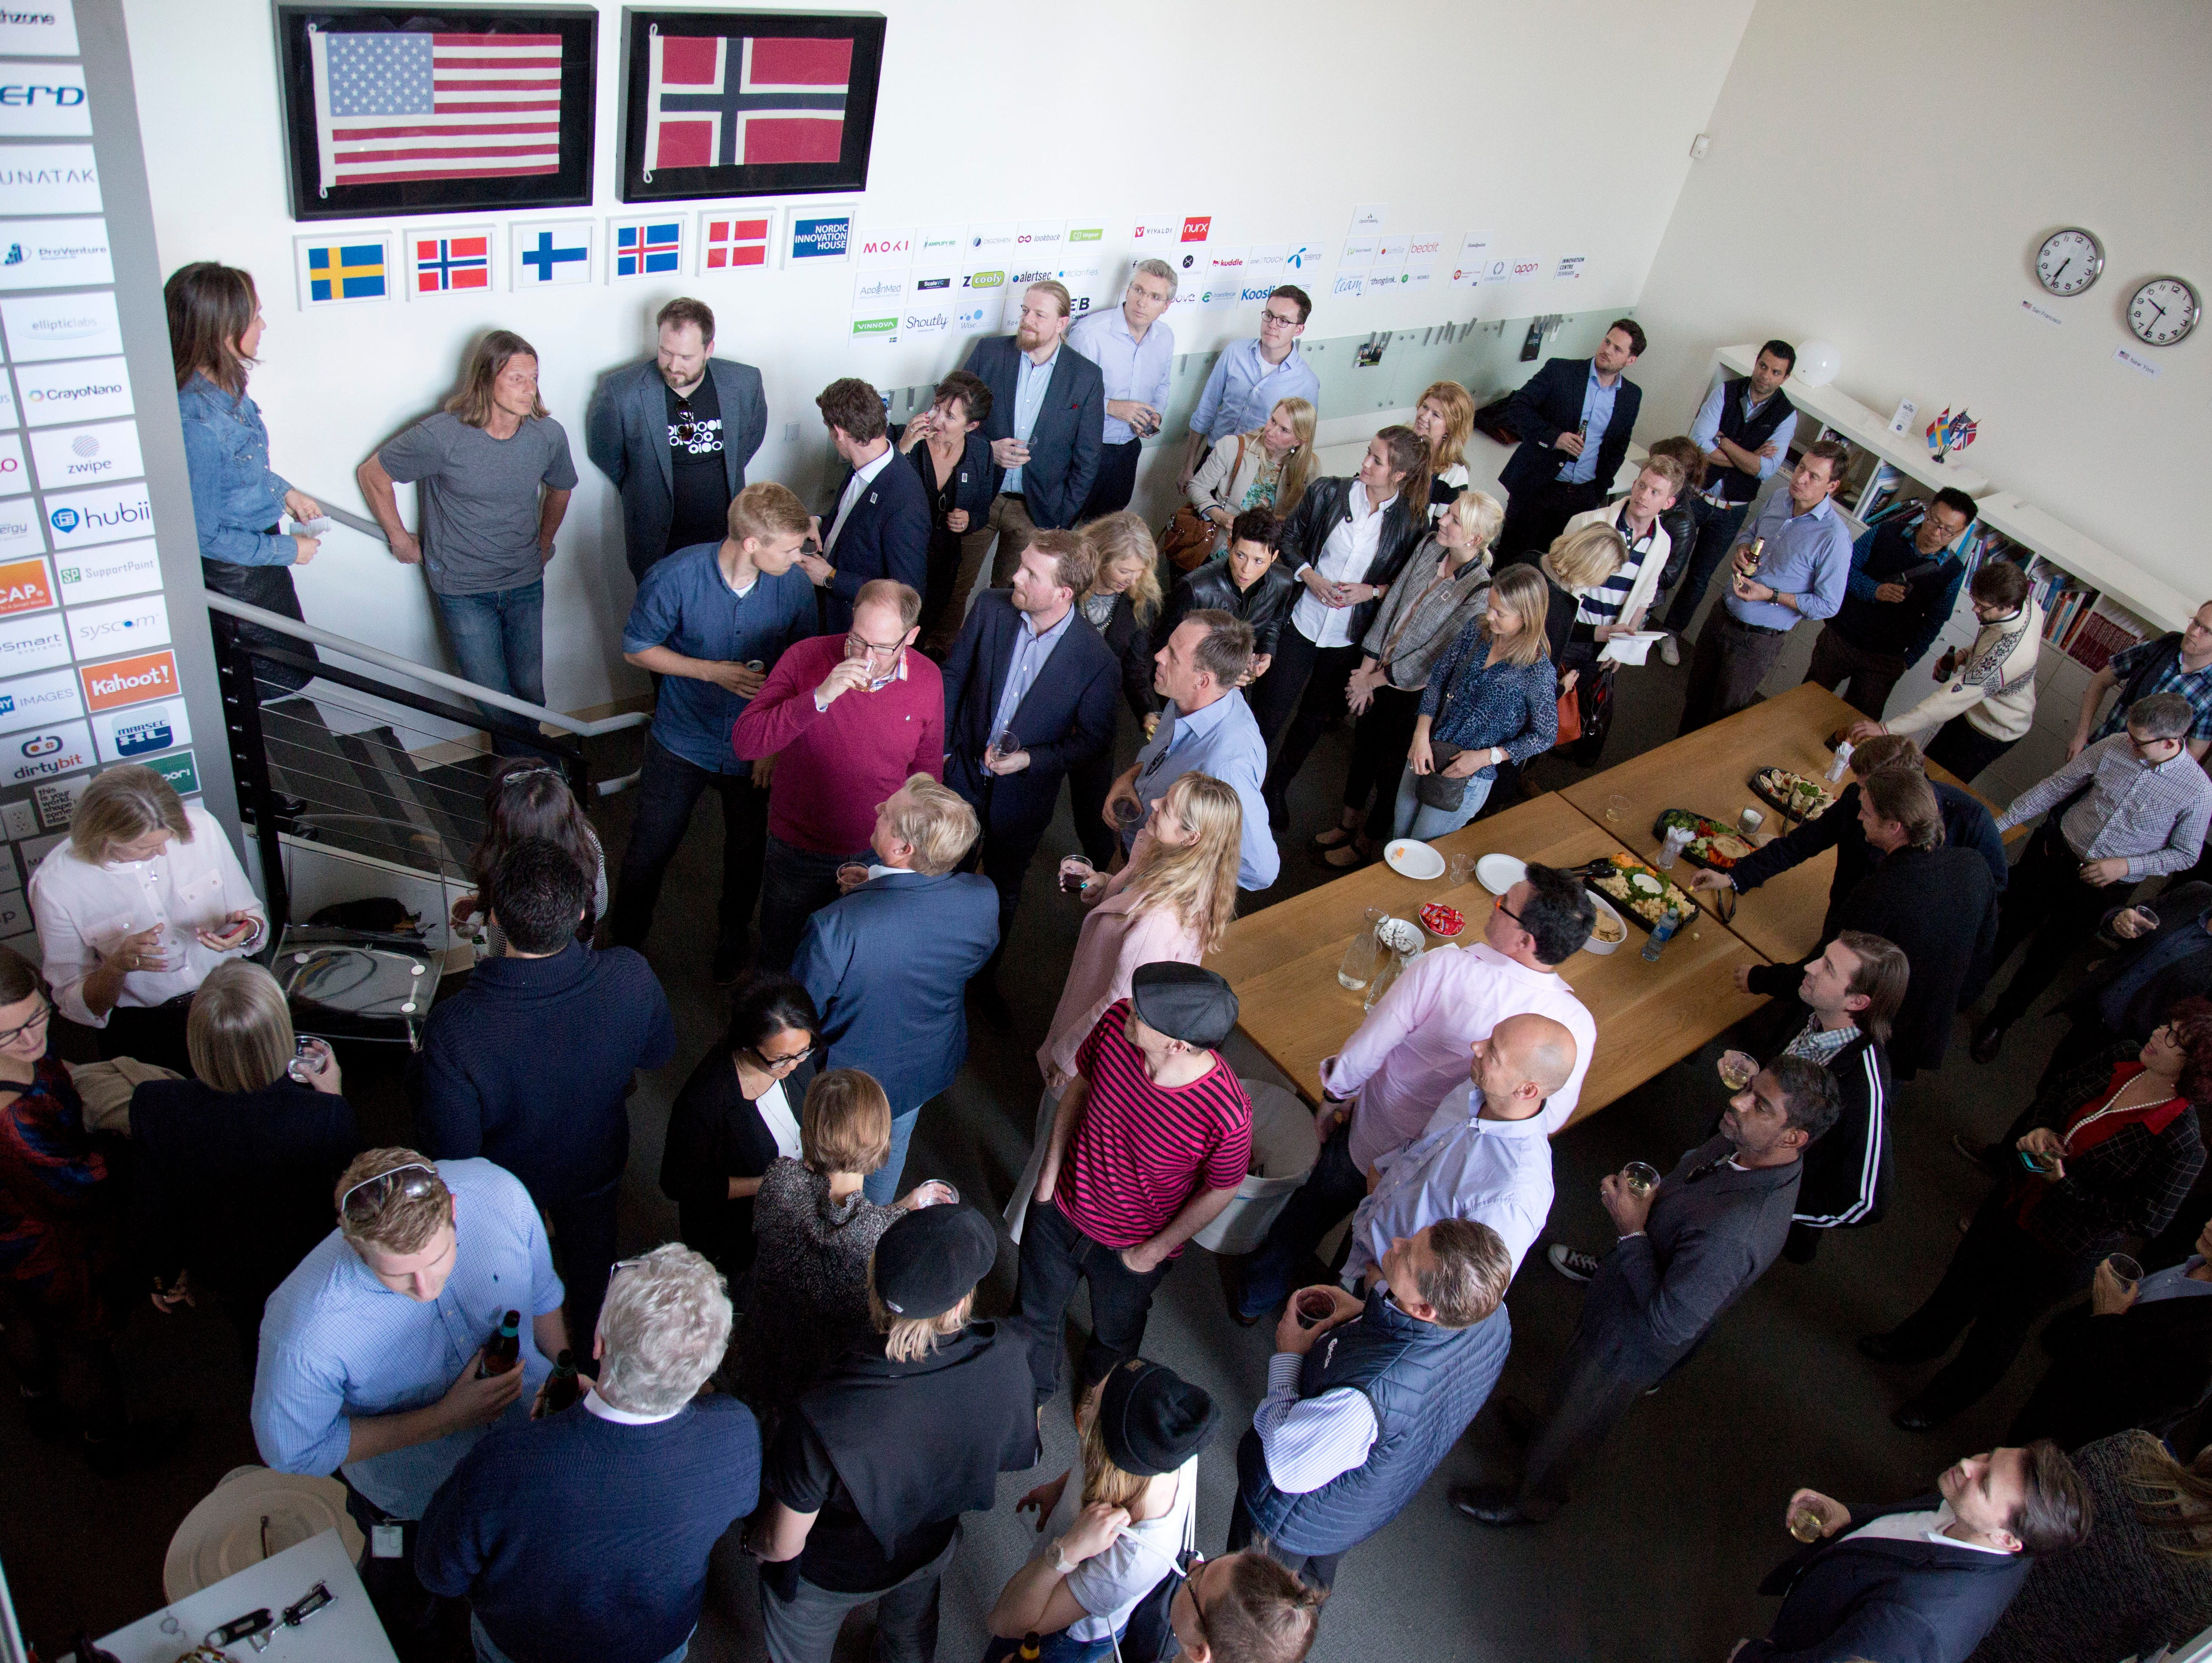 A networking event at the Nordic Innovation House on March 11, 2015 in Palo Alto, Calif. Funded by a consortium of Norway, Sweden, Denmark, Finland and Iceland, the space provides a